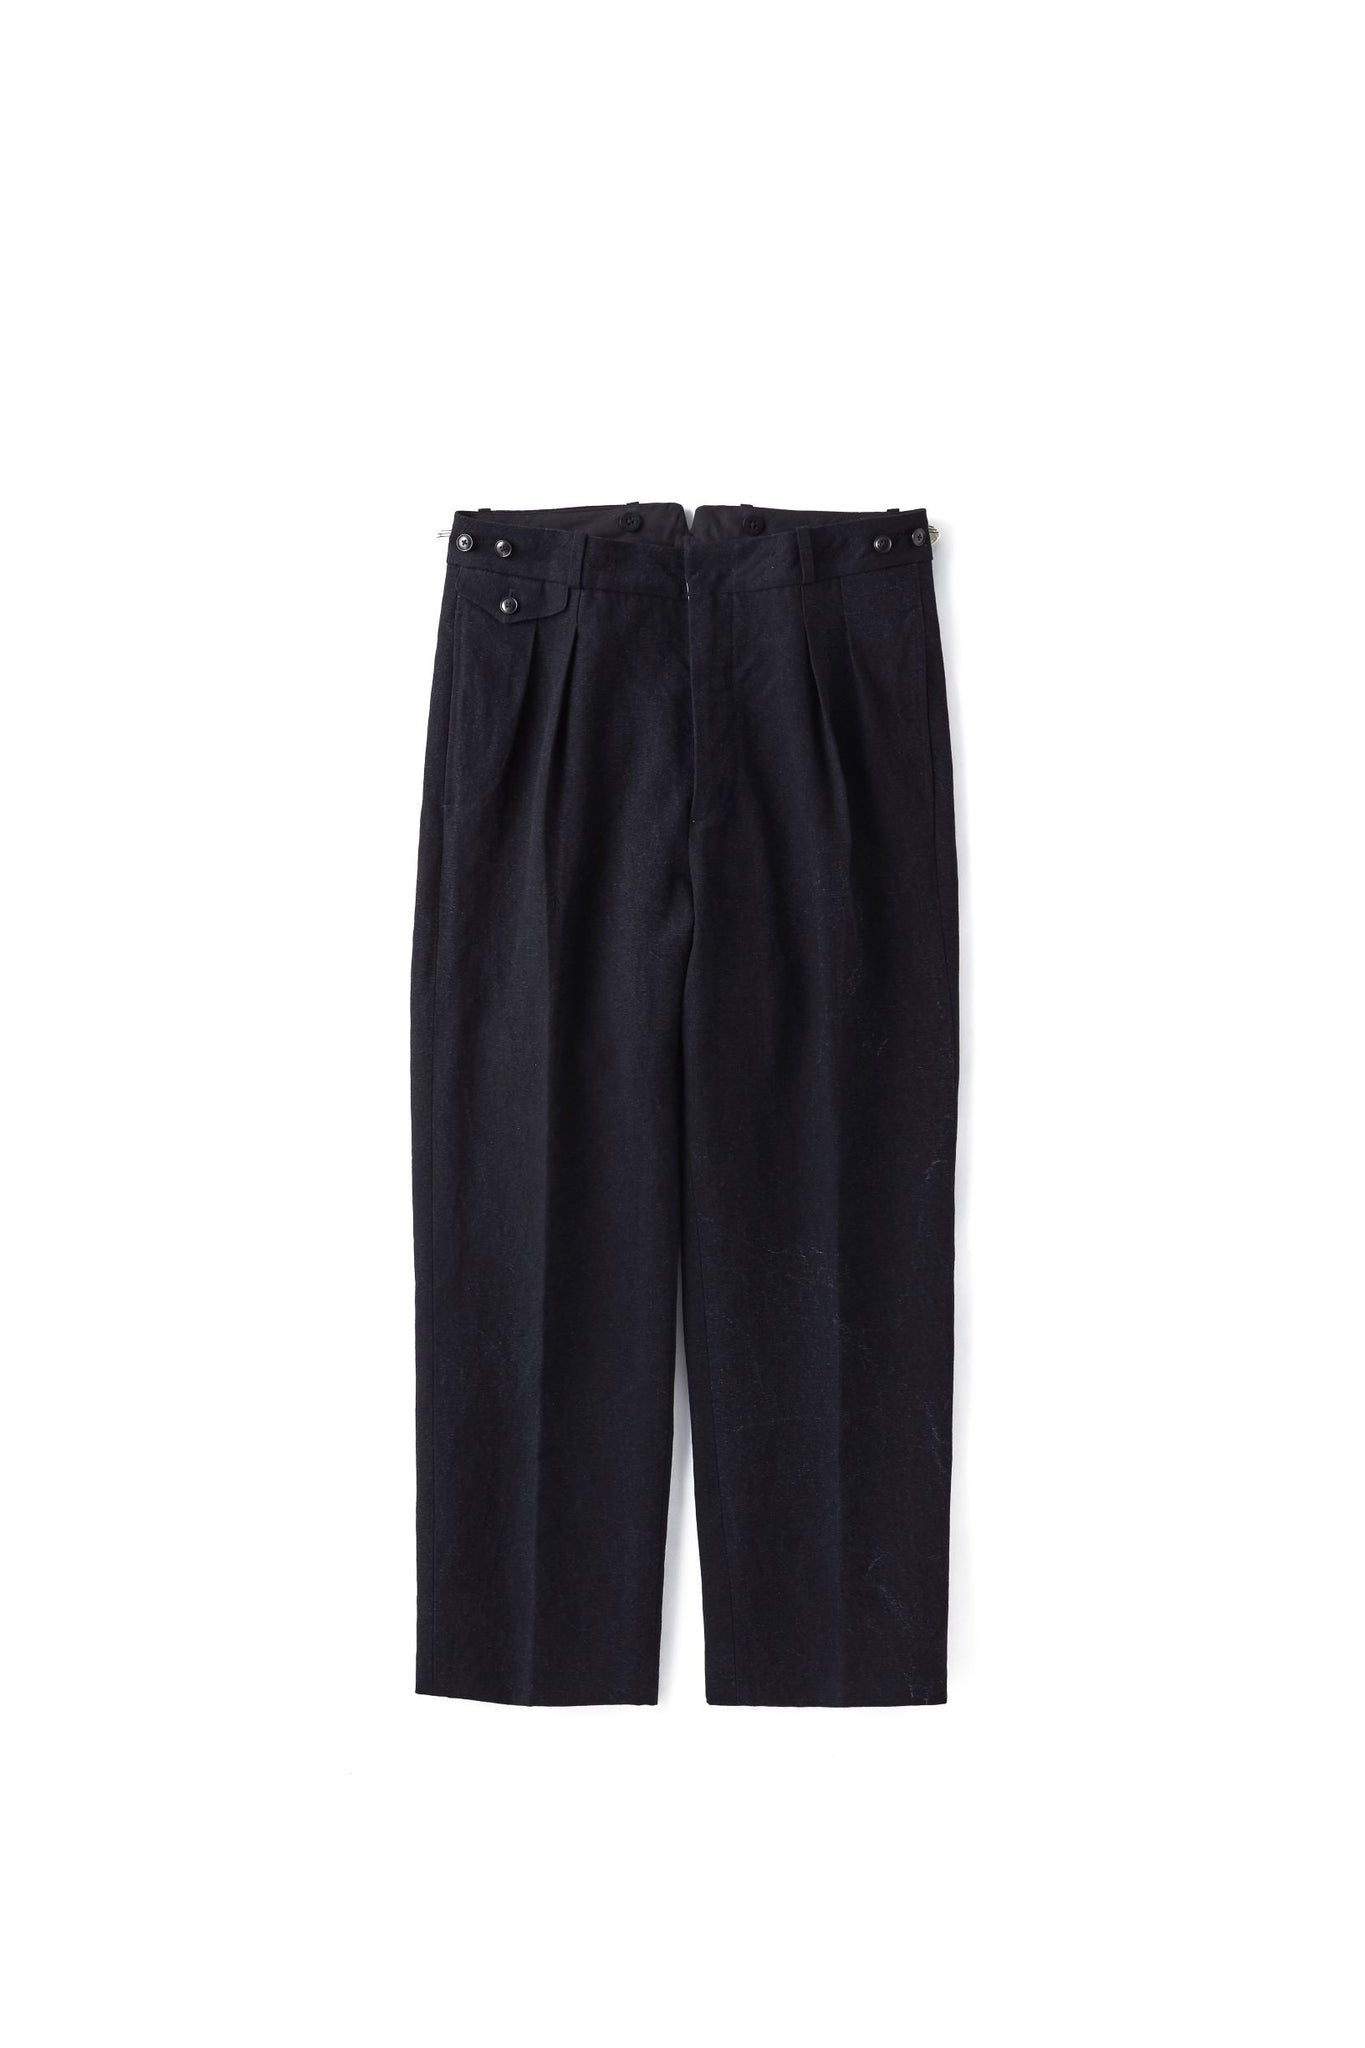 DOUBLE-PLEATED DRAPE TROUSER - 211OJ-PT02